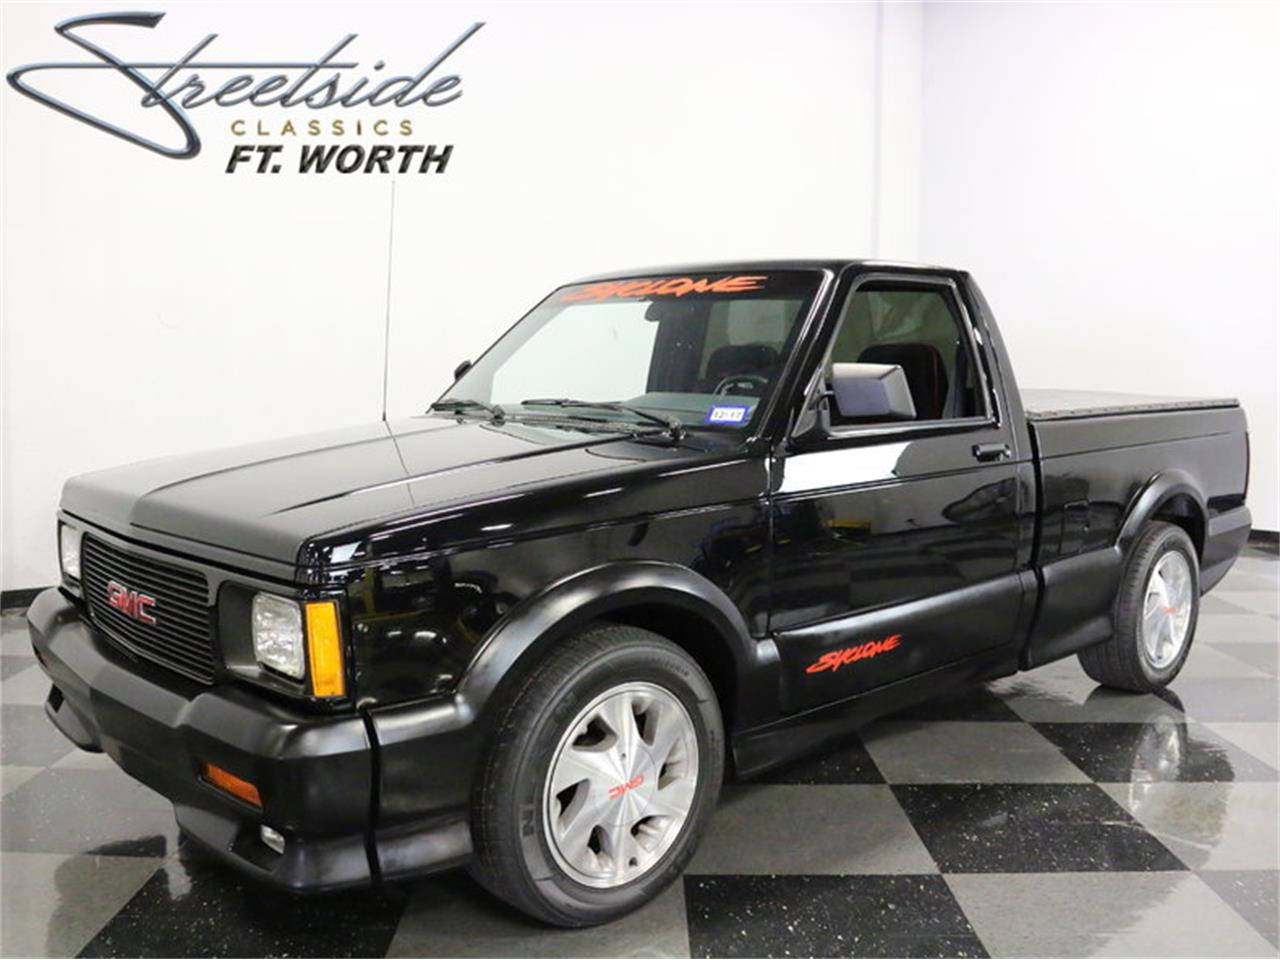 For Sale: 1991 GMC Syclone in Ft Worth, Texas